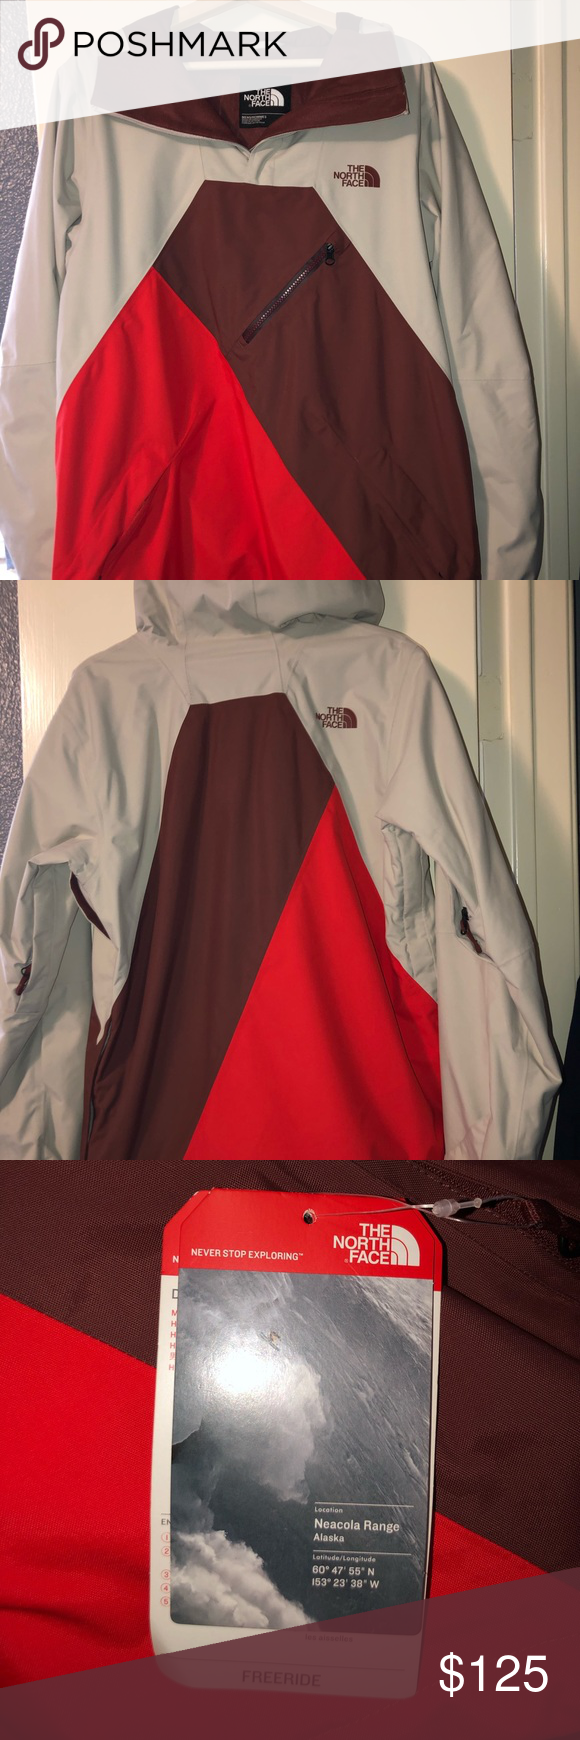 afd25099356f The North Face Dubs Anorak Jacket Small Dubs Anorak Jacket size SMALL